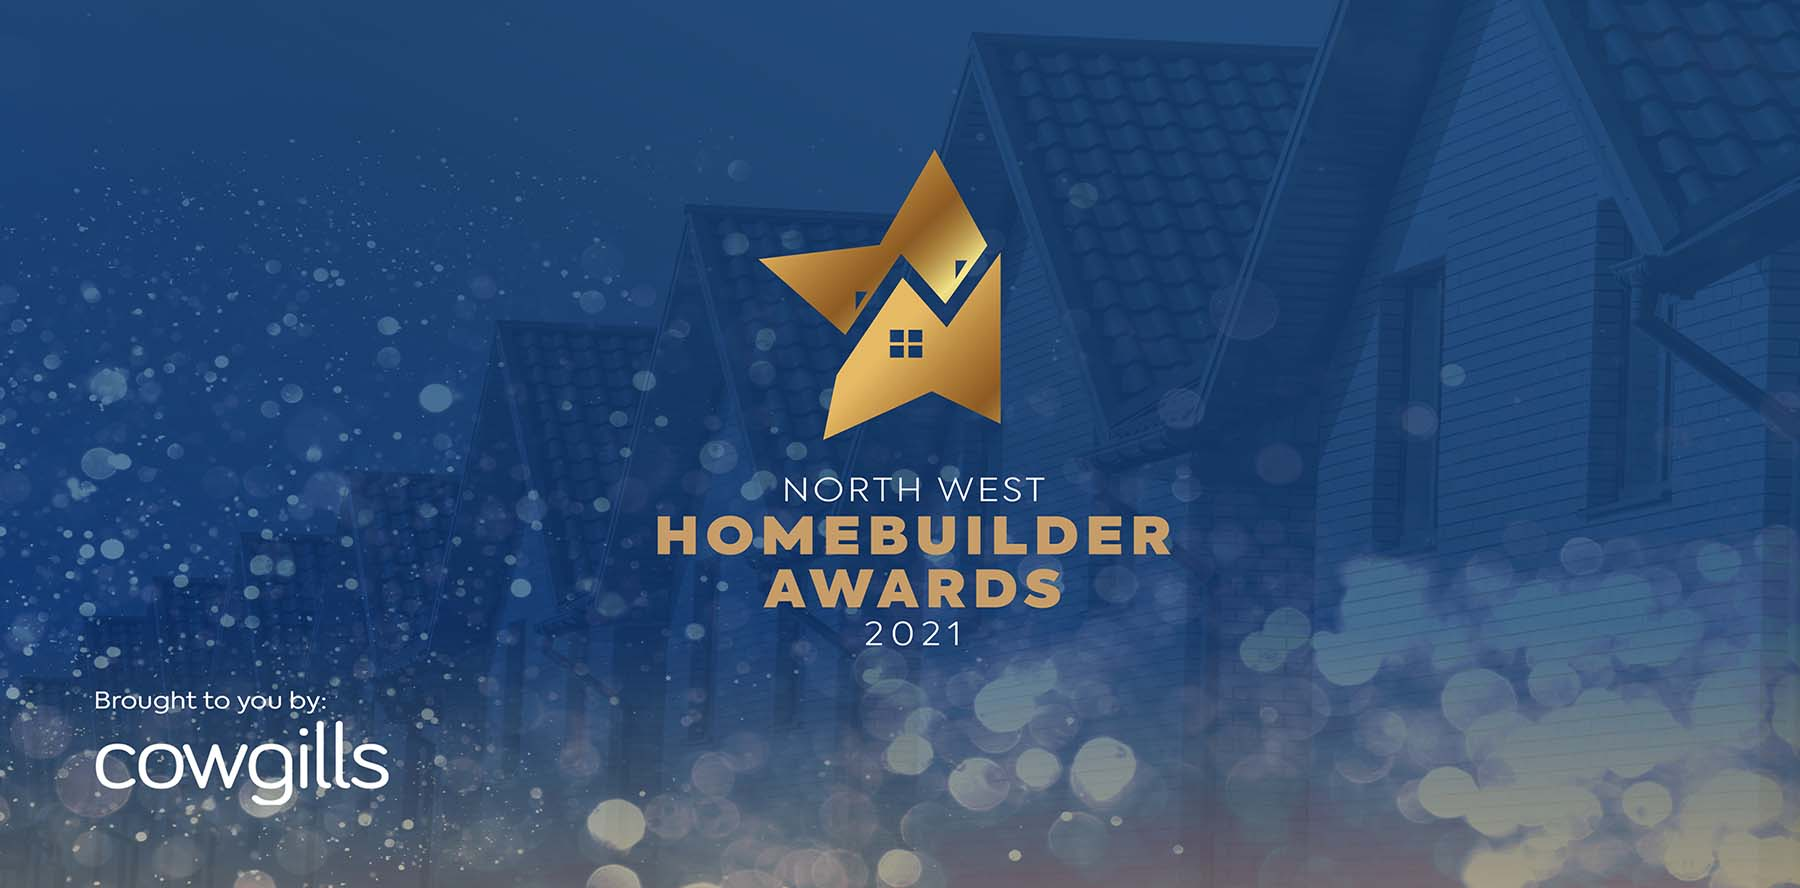 Cowgills Launches Homebuilder Awards